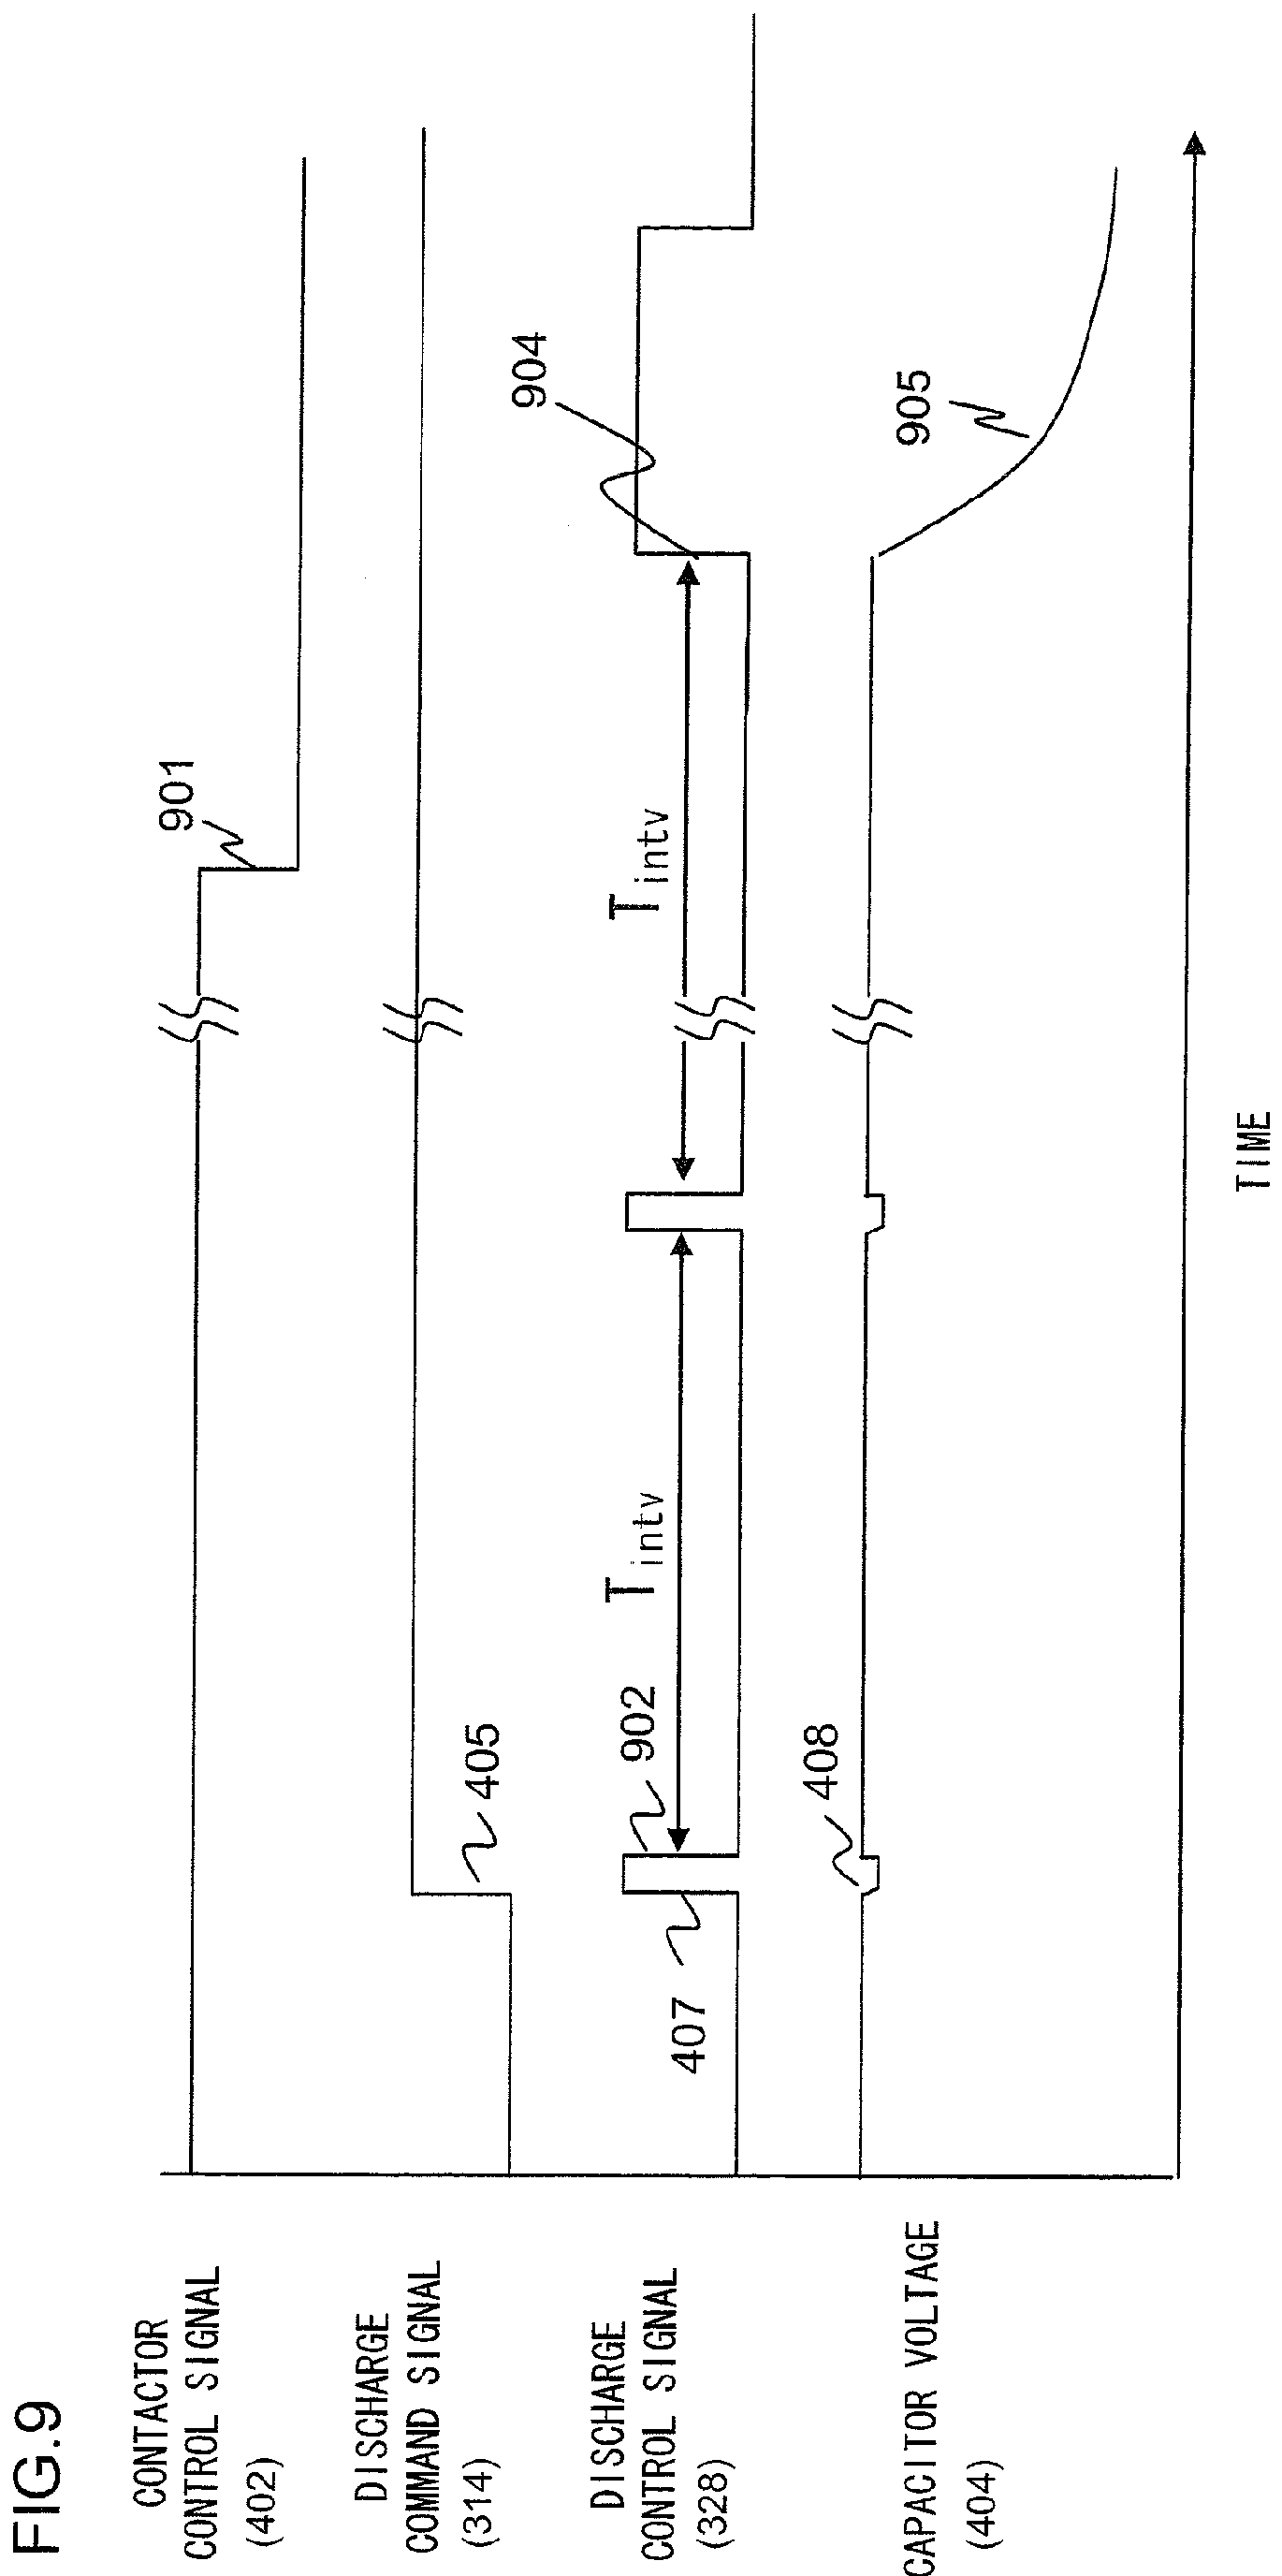 Discharge circuit for smoothing capacitor of DC power supply